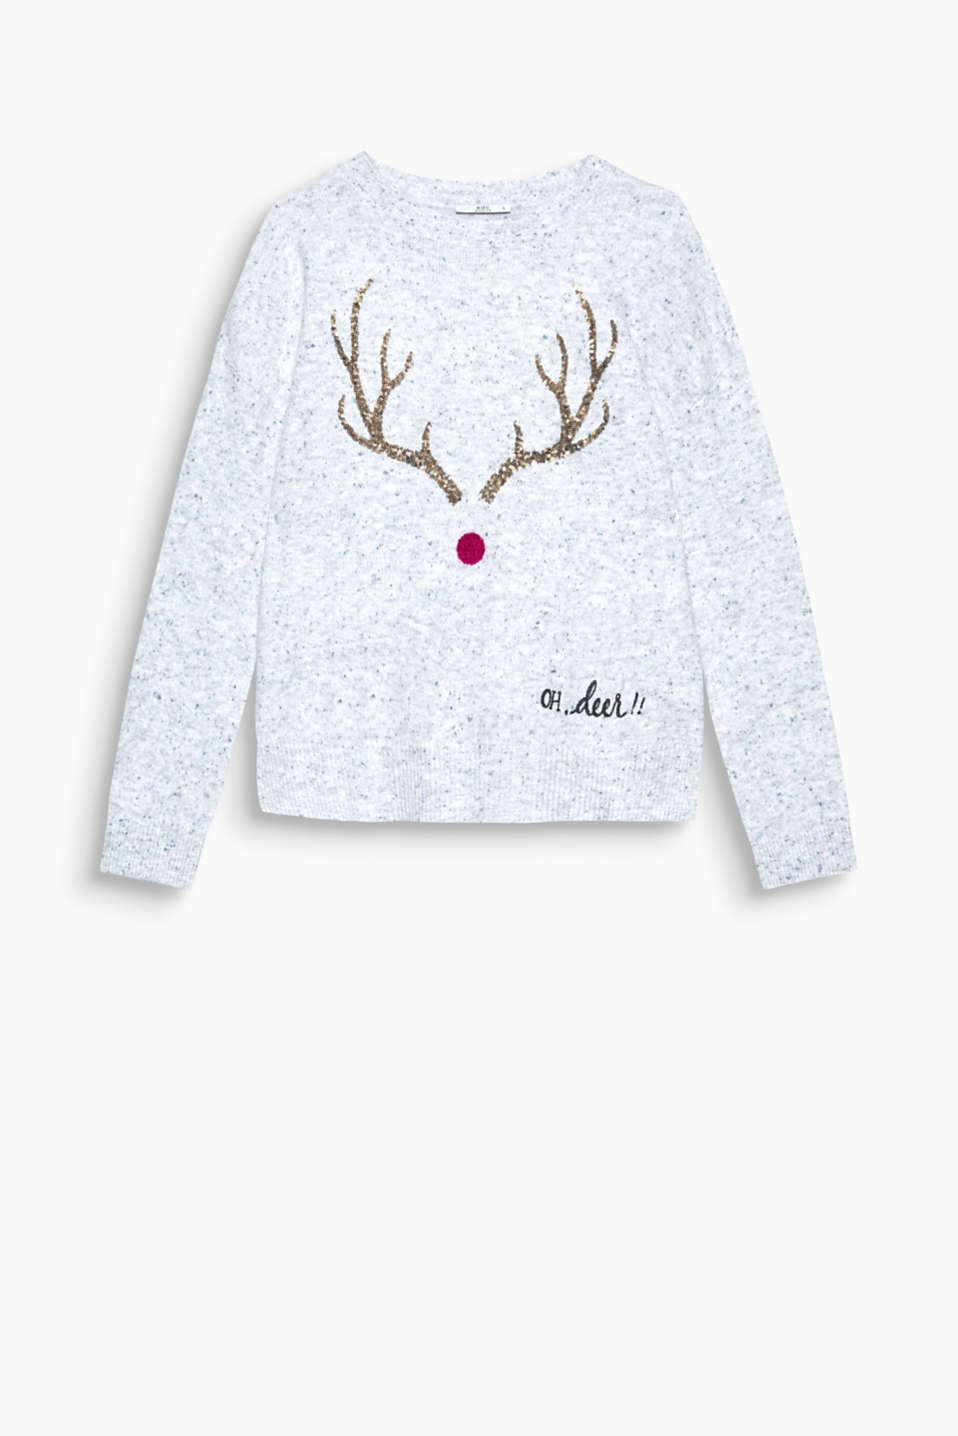 Ho Ho Ho! This cosy jumper will get you in the festive spirit with its shimmery sequin antlers.